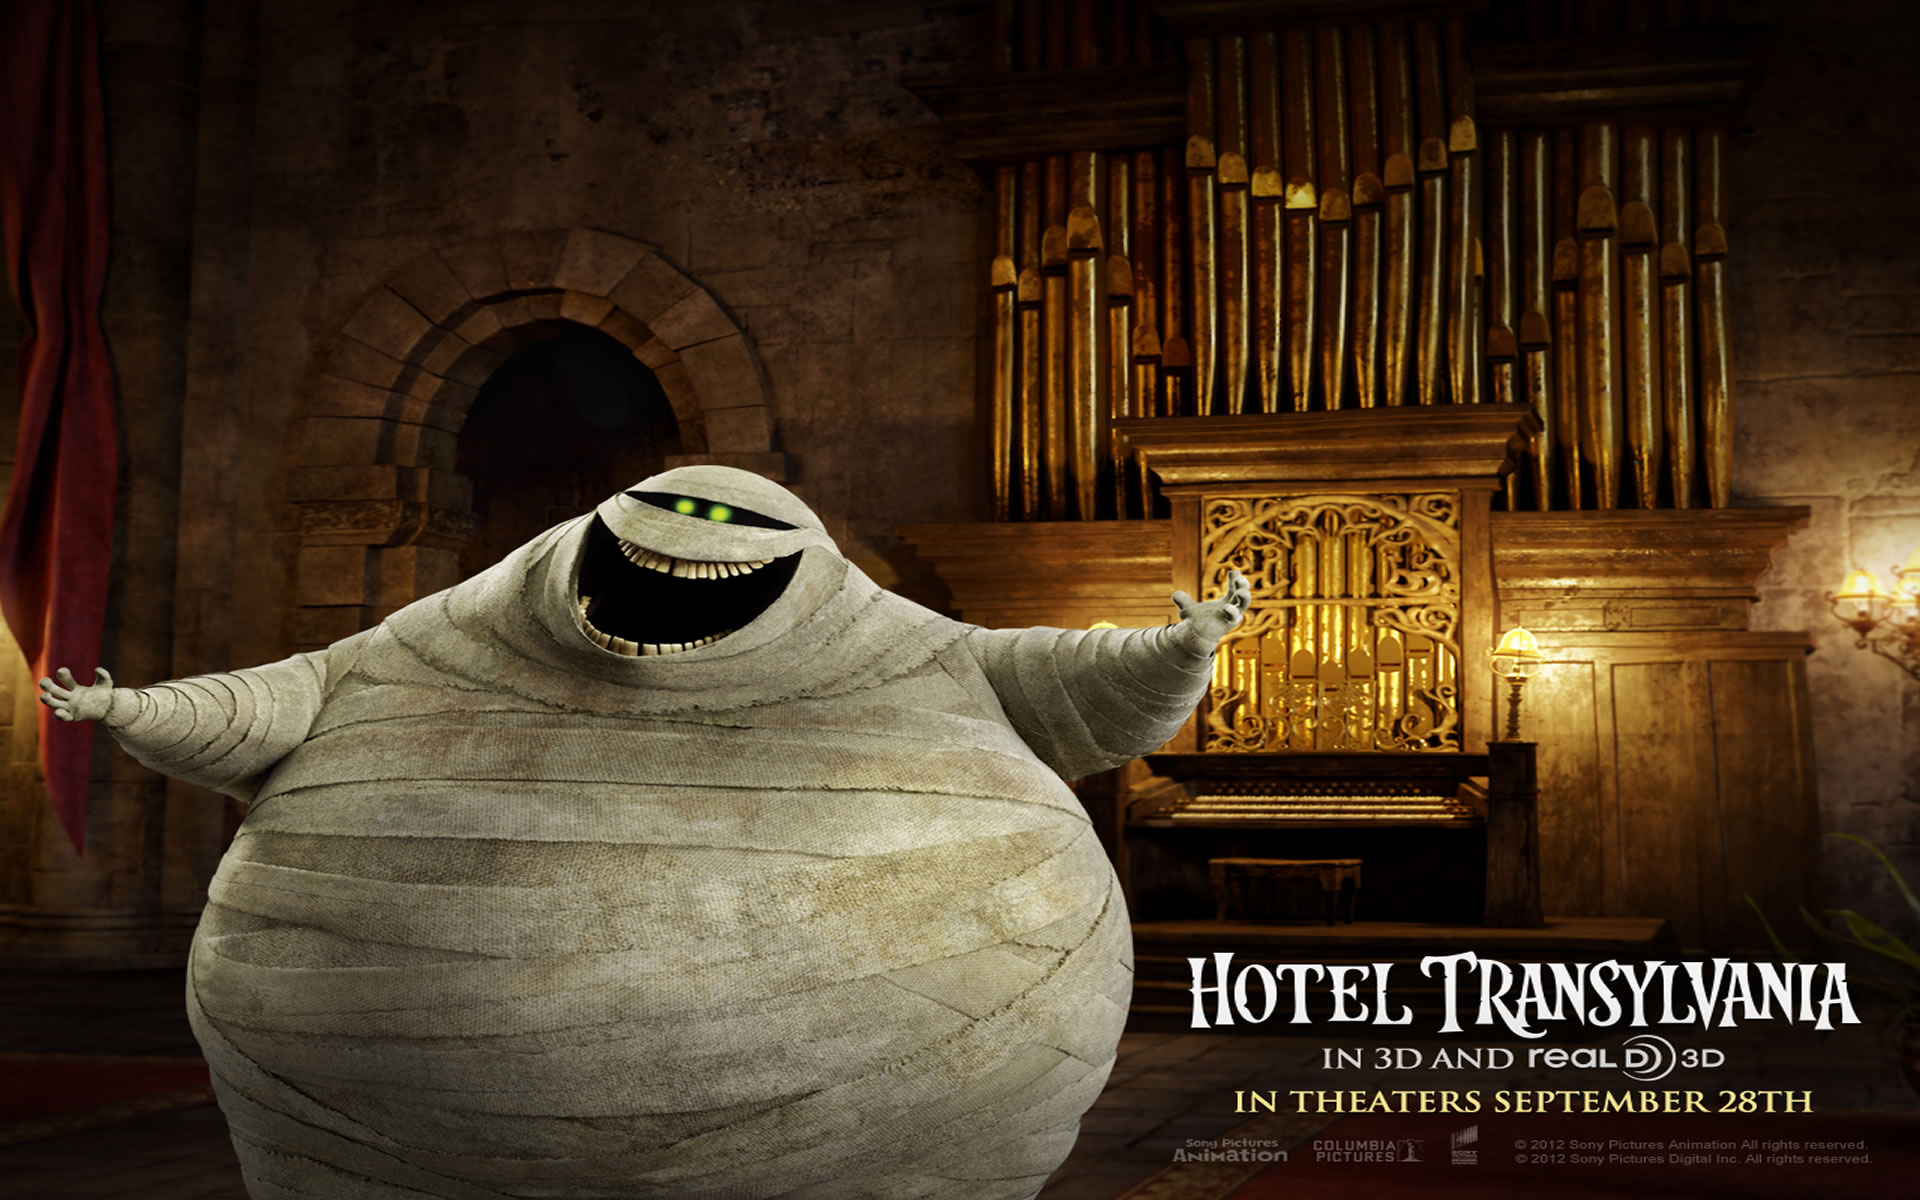 Wallpapers de Cine. Hotel Transylvania